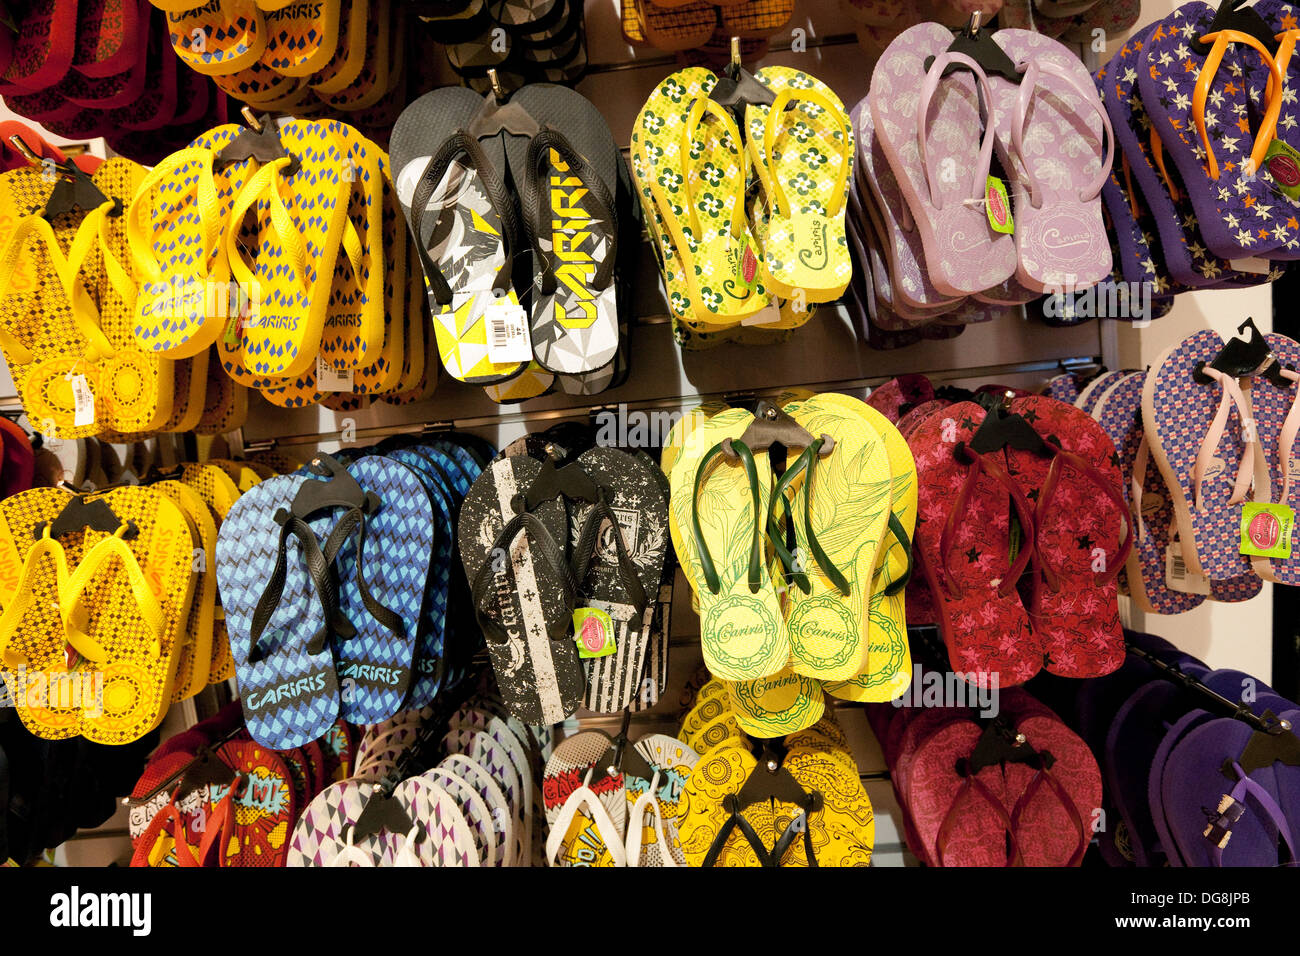 Flip flops for sale, Johannesburg airport shop, South Africa - Stock Image